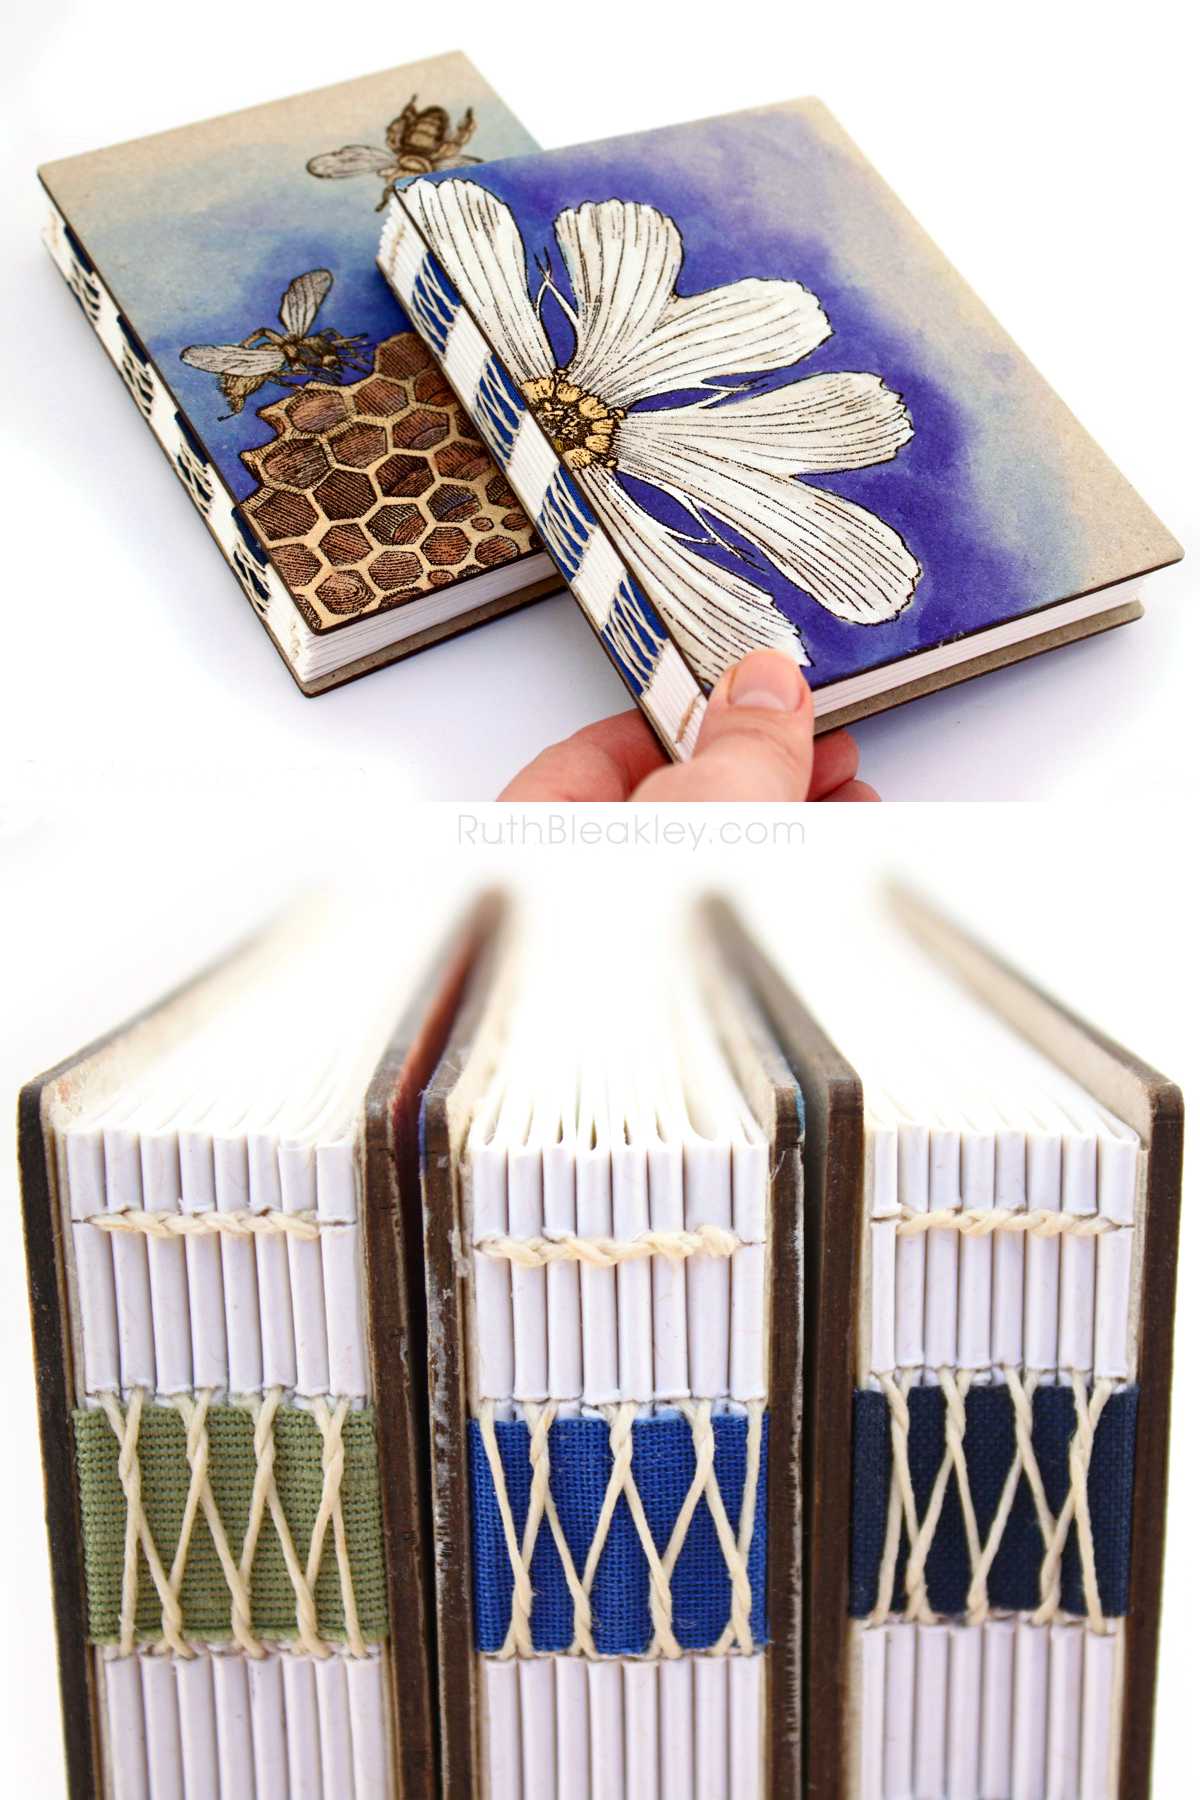 Handmade French Link Journals Make Great Gifts for Writers